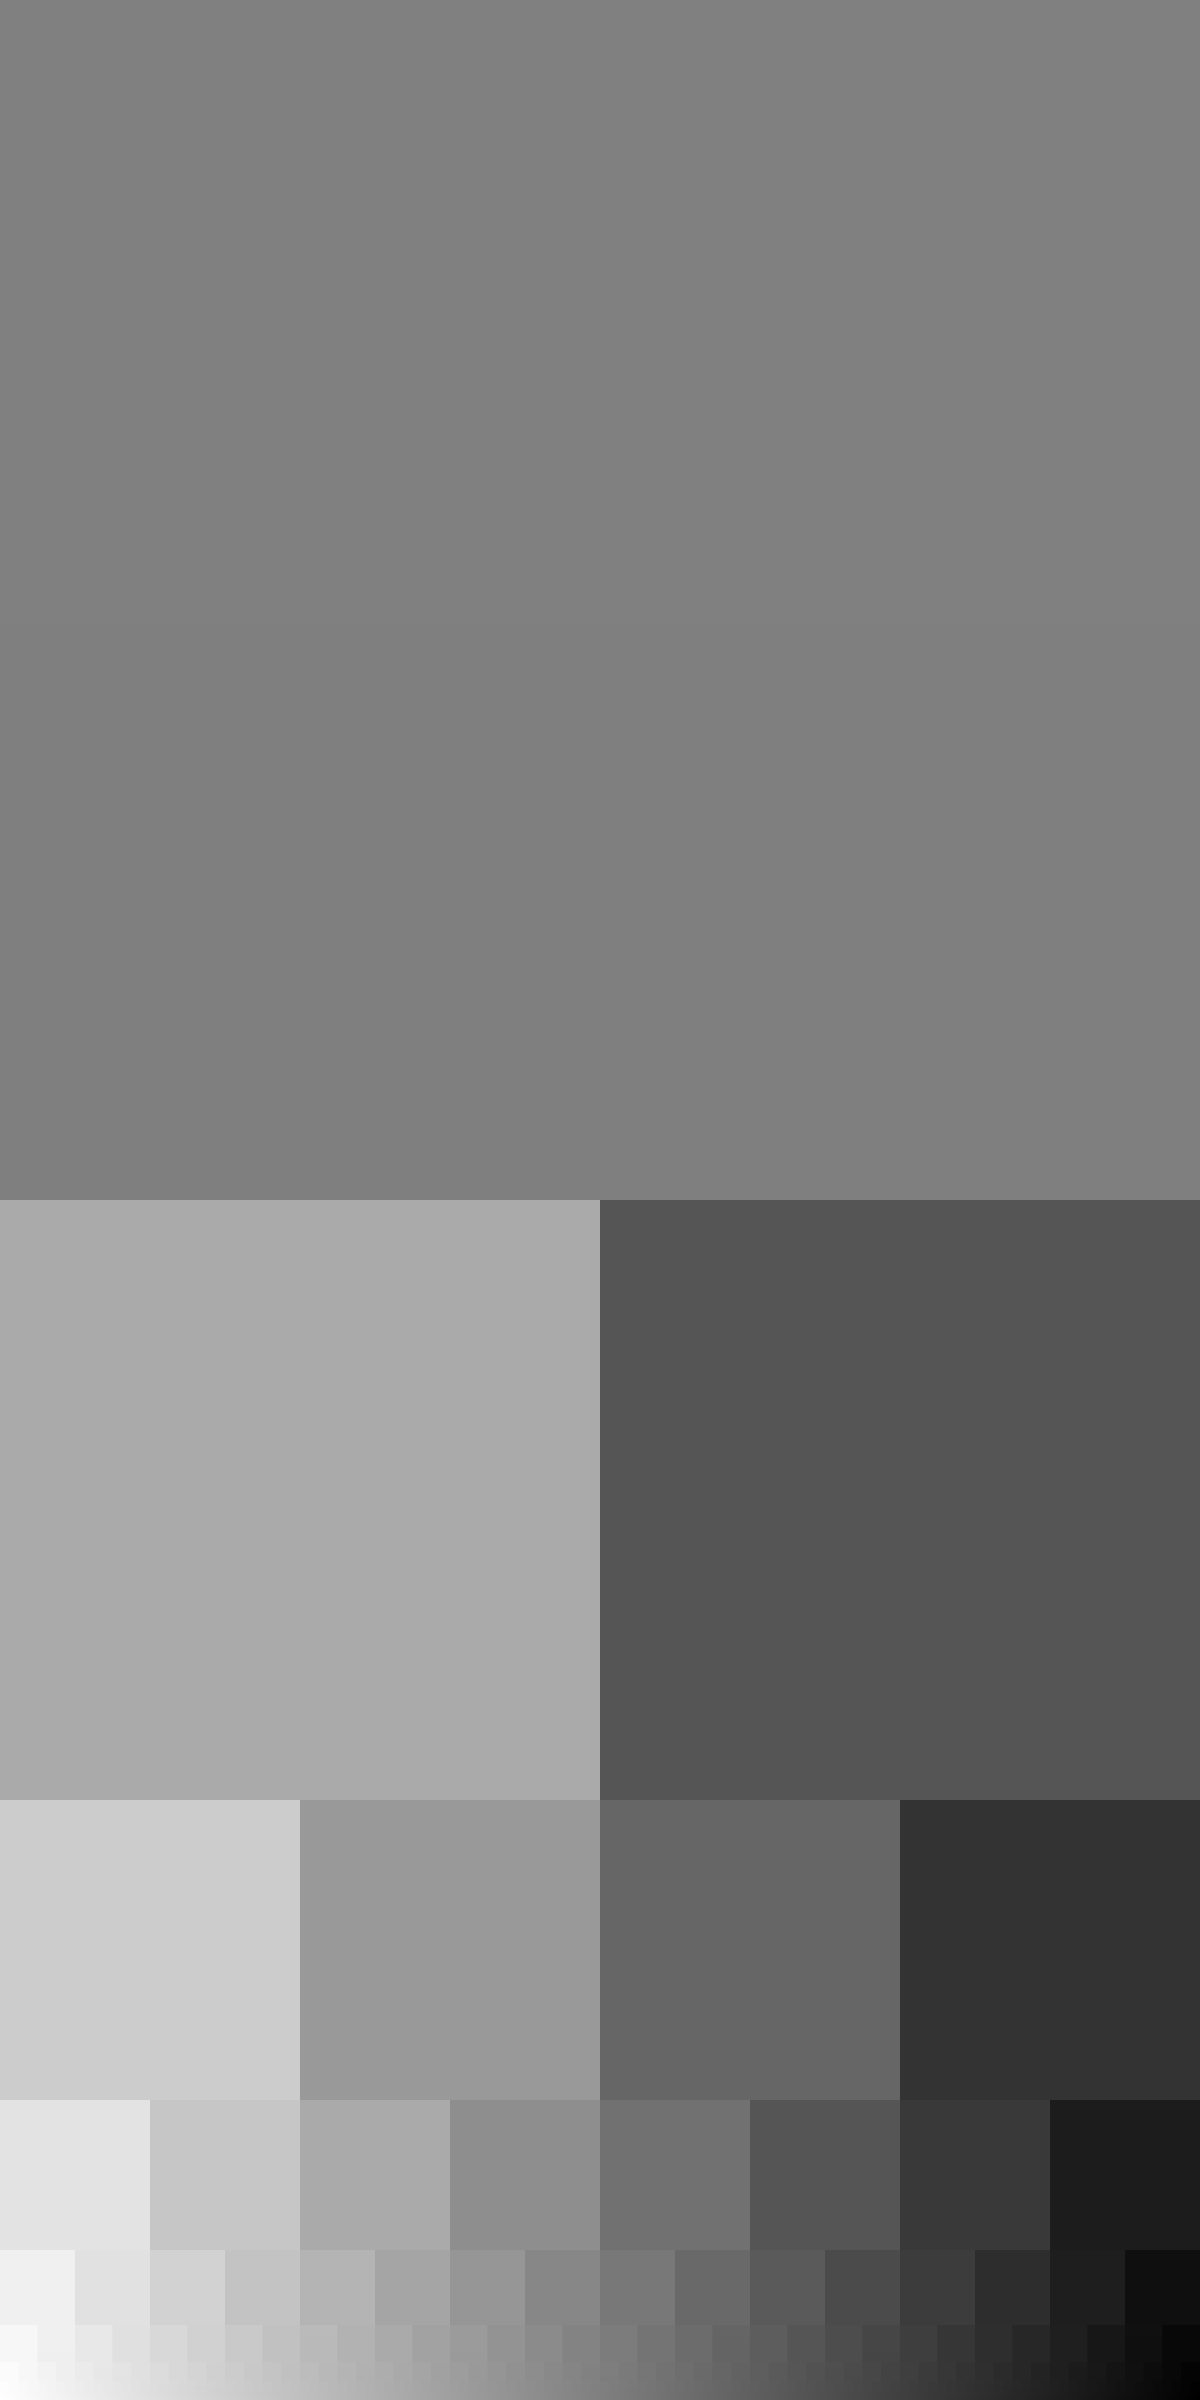 set of squares 23 by Lazur URH